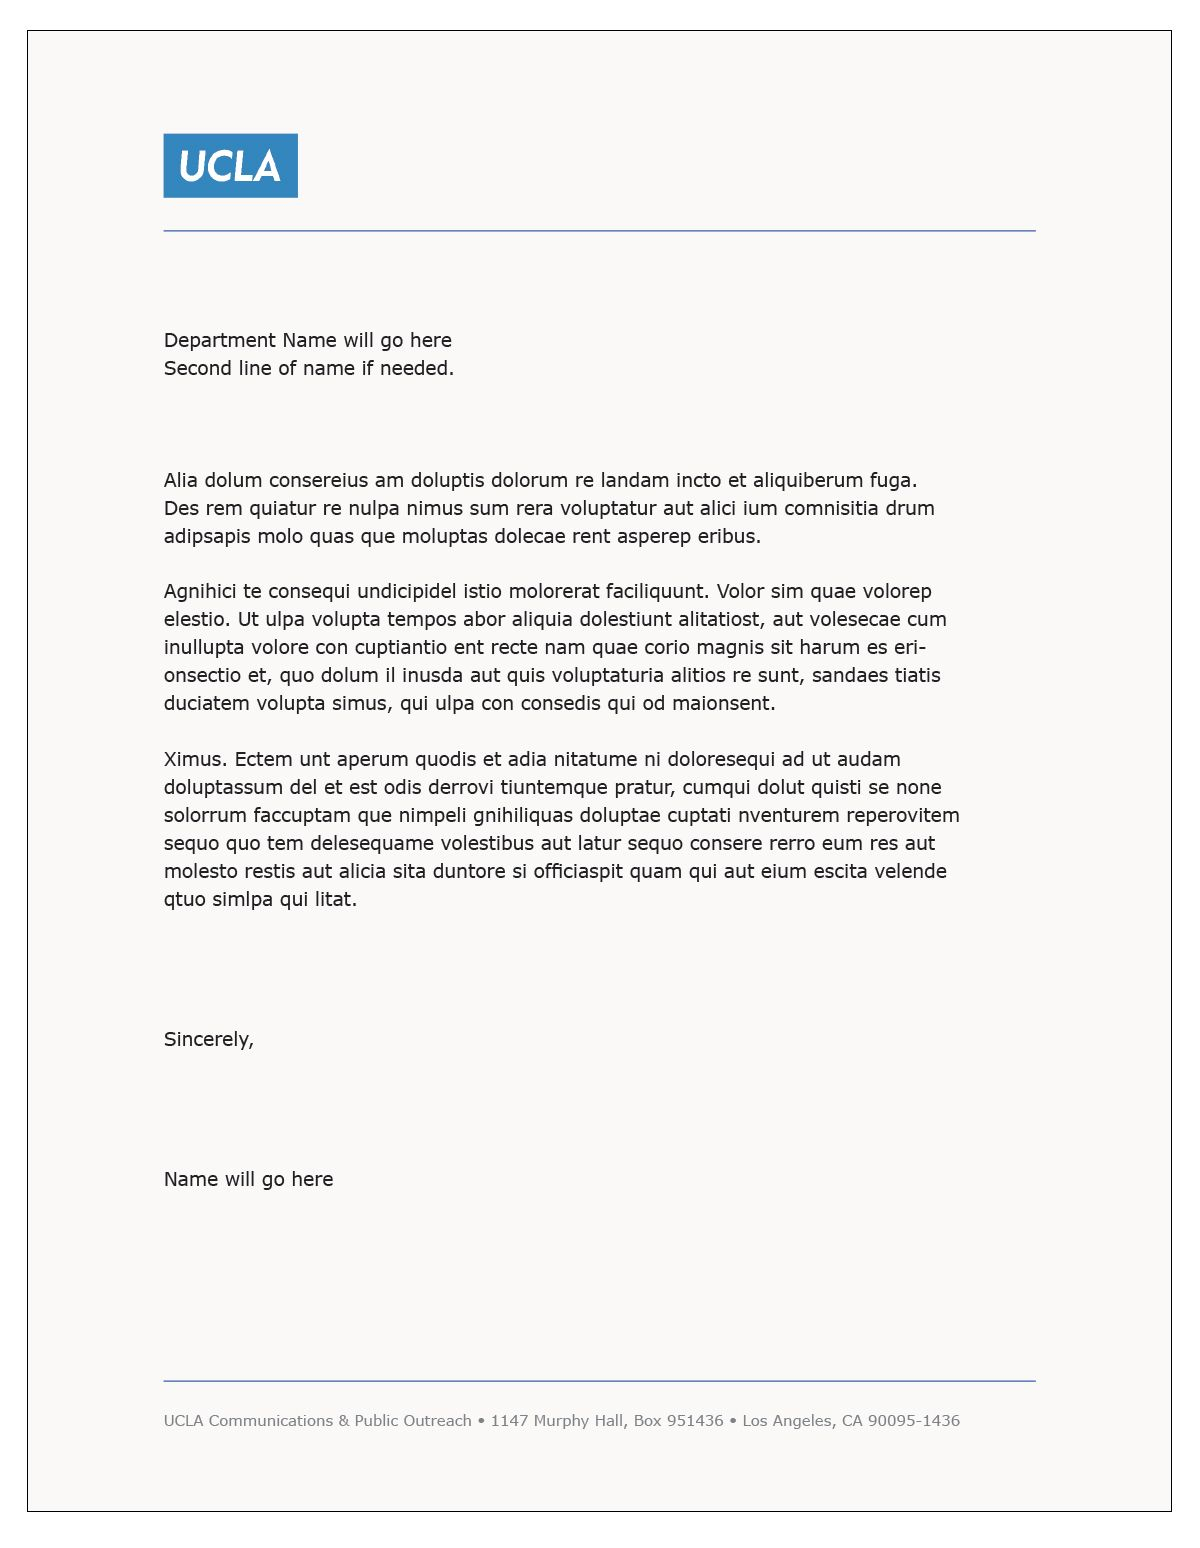 ucla resume template Collection-Cover Letter Template Ucla cover coverlettertemplate letter template 3-c